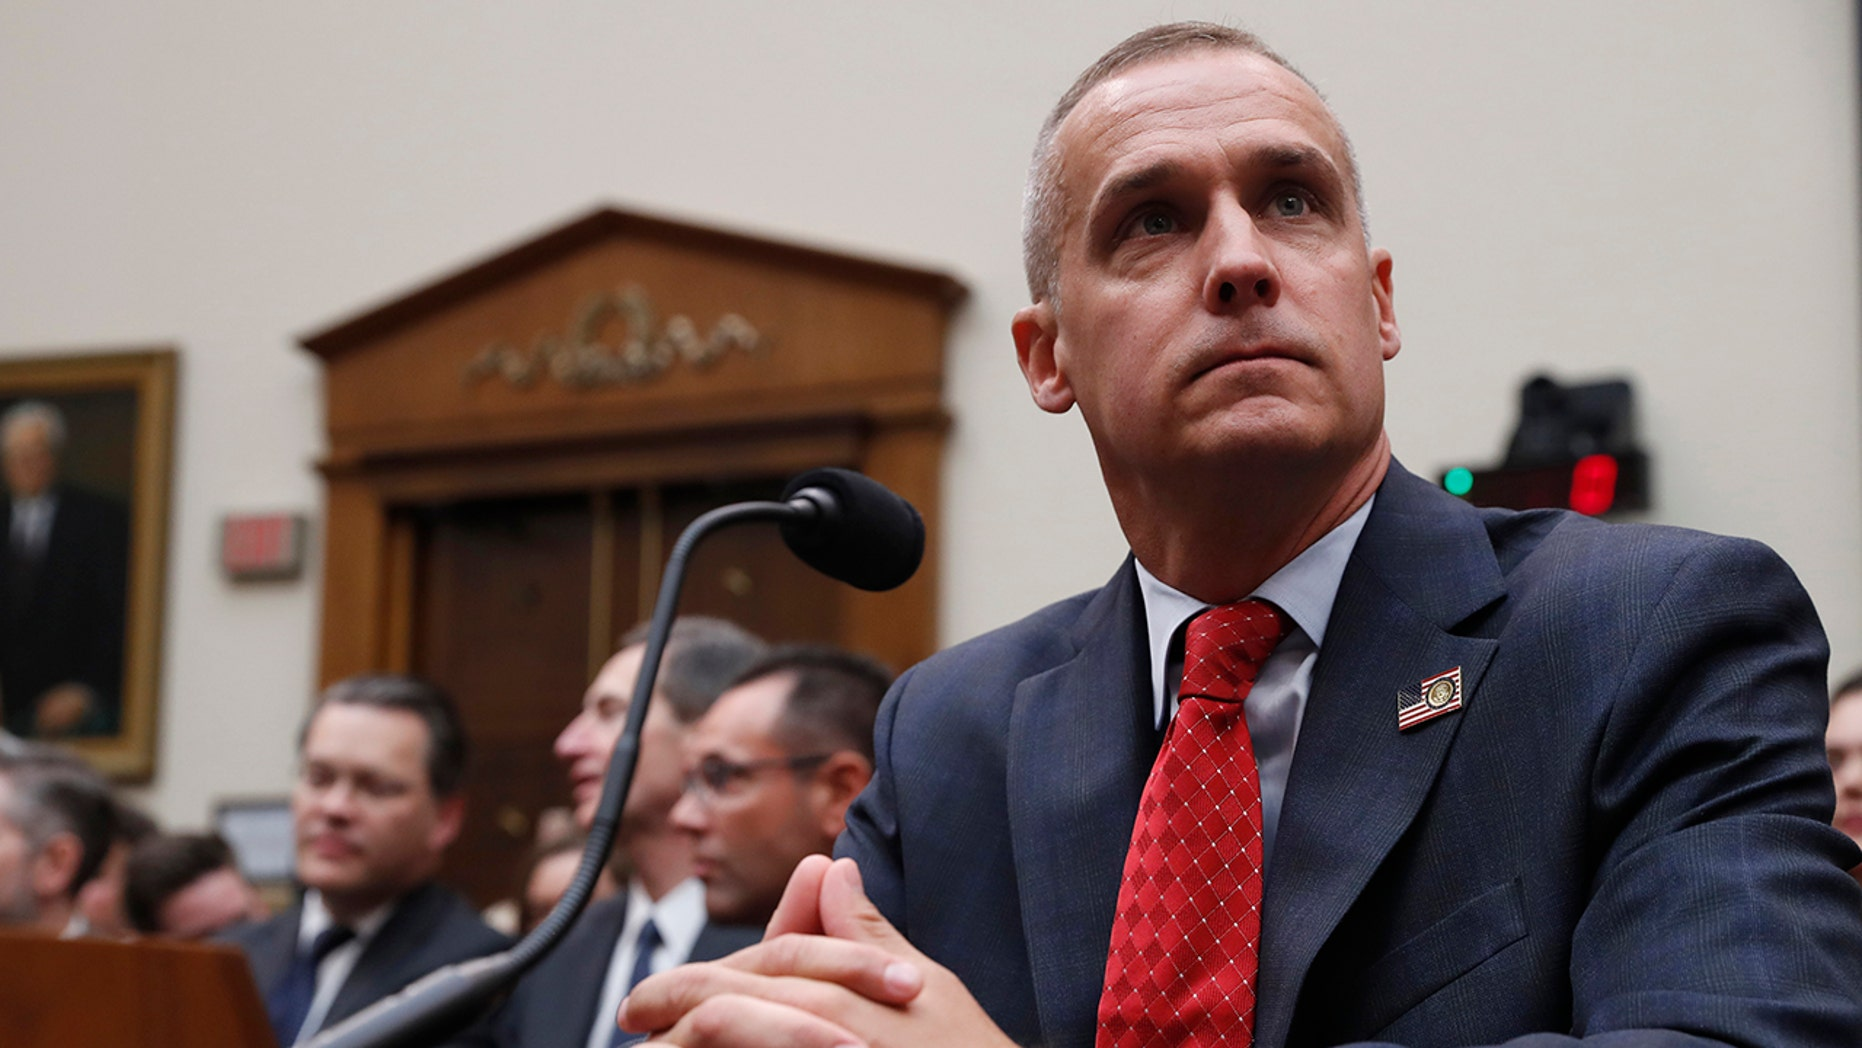 Corey Lewandowski, former campaign manager for President Donald Trump, arrives to testify to the House Judiciary Committee Tuesday, Sept. 17, 2019, in Washington. (AP Photo/Jacquelyn Martin)